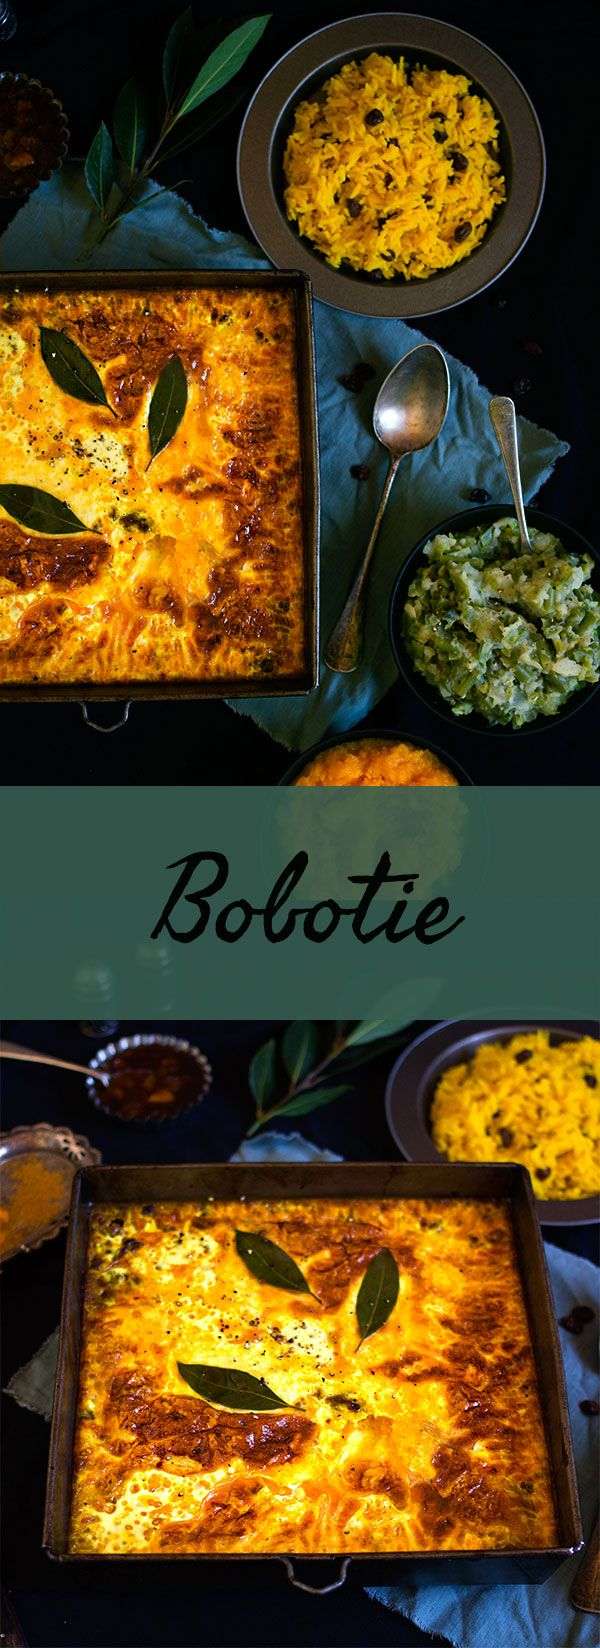 Easy and delicious bobotie recipe southafrican beef bobotie le easy and delicious bobotie recipe southafrican beef bobotie african food forumfinder Gallery